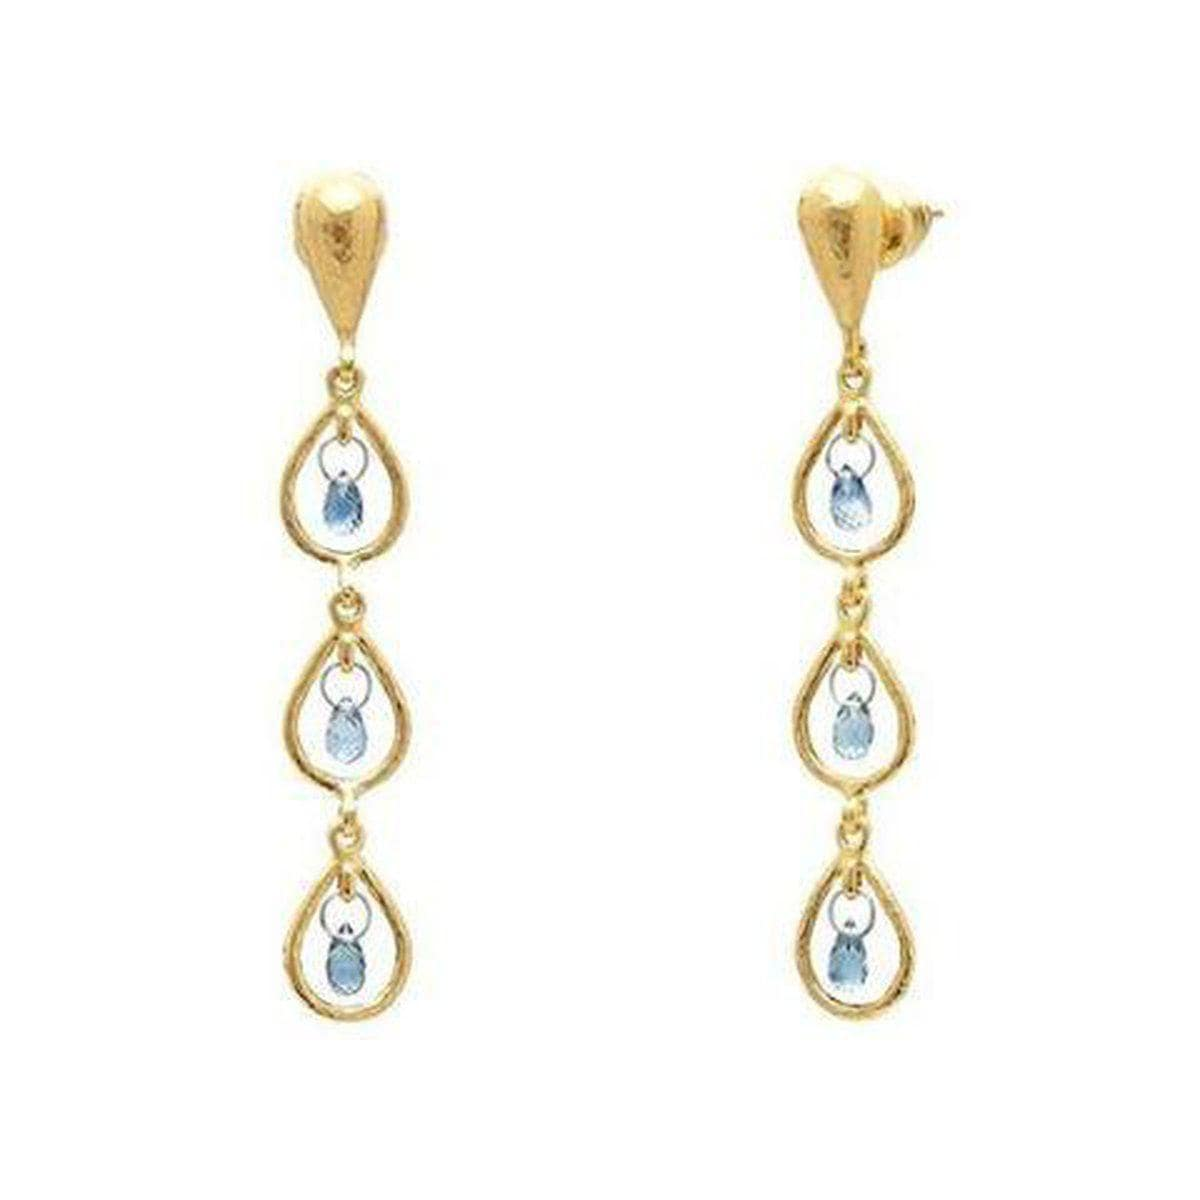 Delicate Hue 22K Gold Sapphire Earrings - TDE-FSB-3FR-BL-TRD-GURHAN-Renee Taylor Gallery